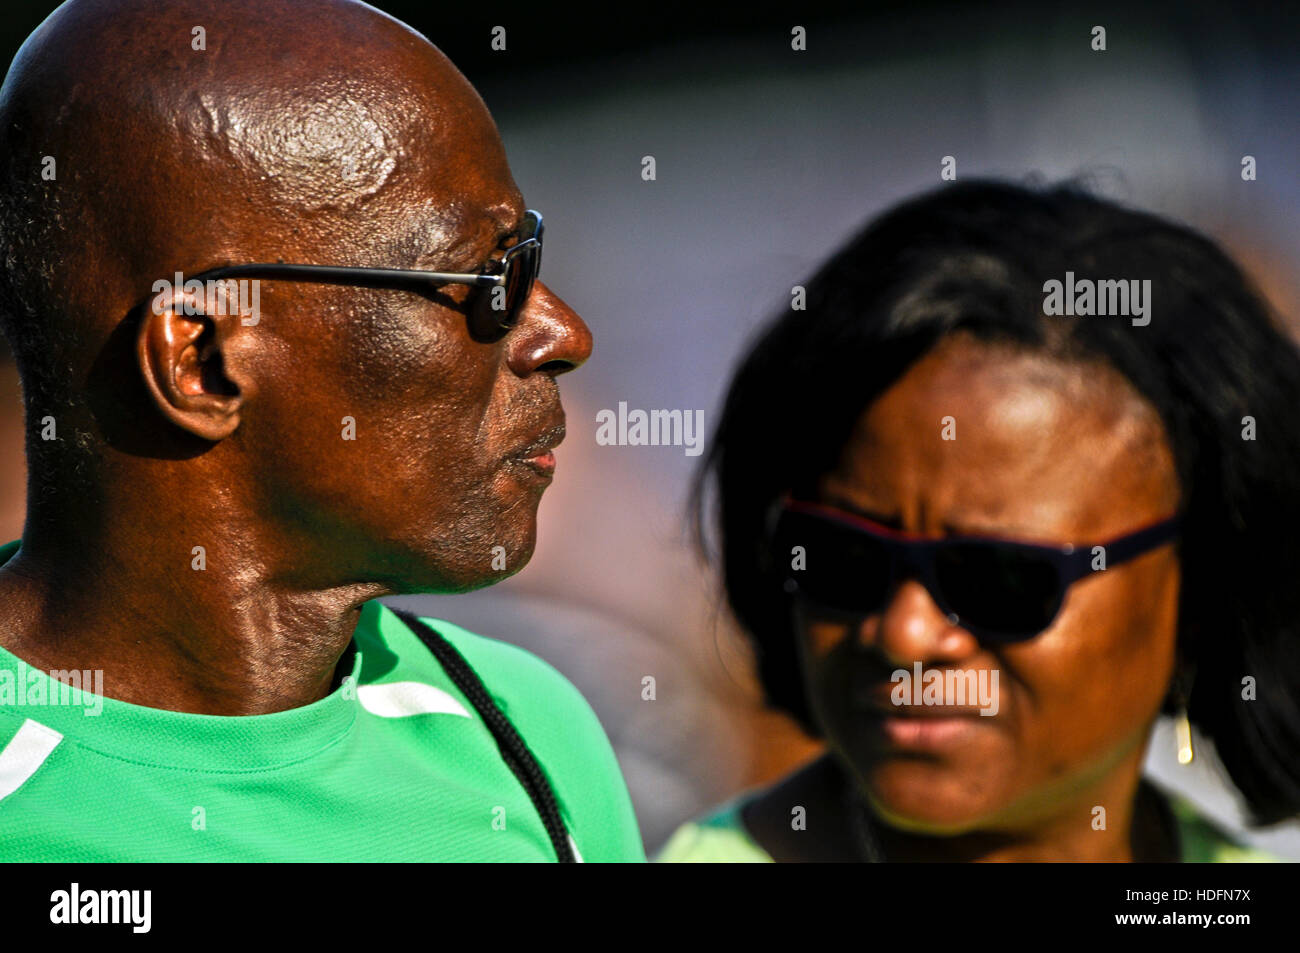 African couple, wearing sunglasses - Stock Image